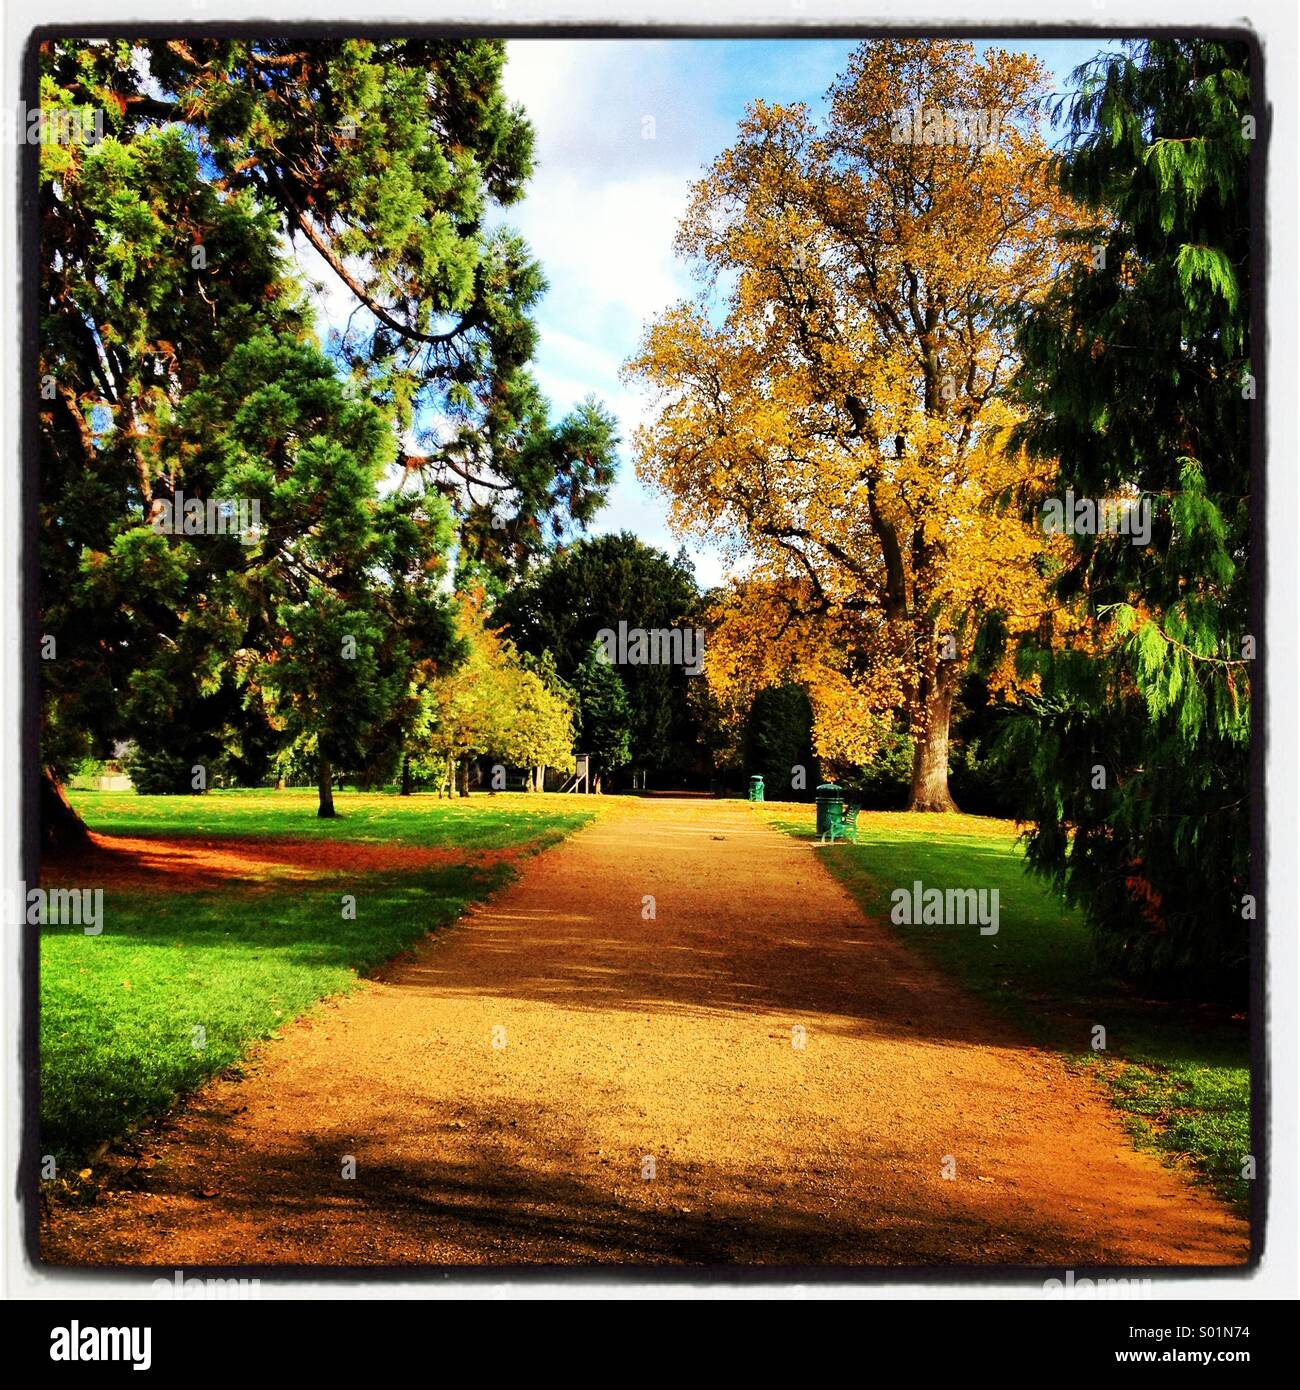 Autumn walk in the park - Stock Image